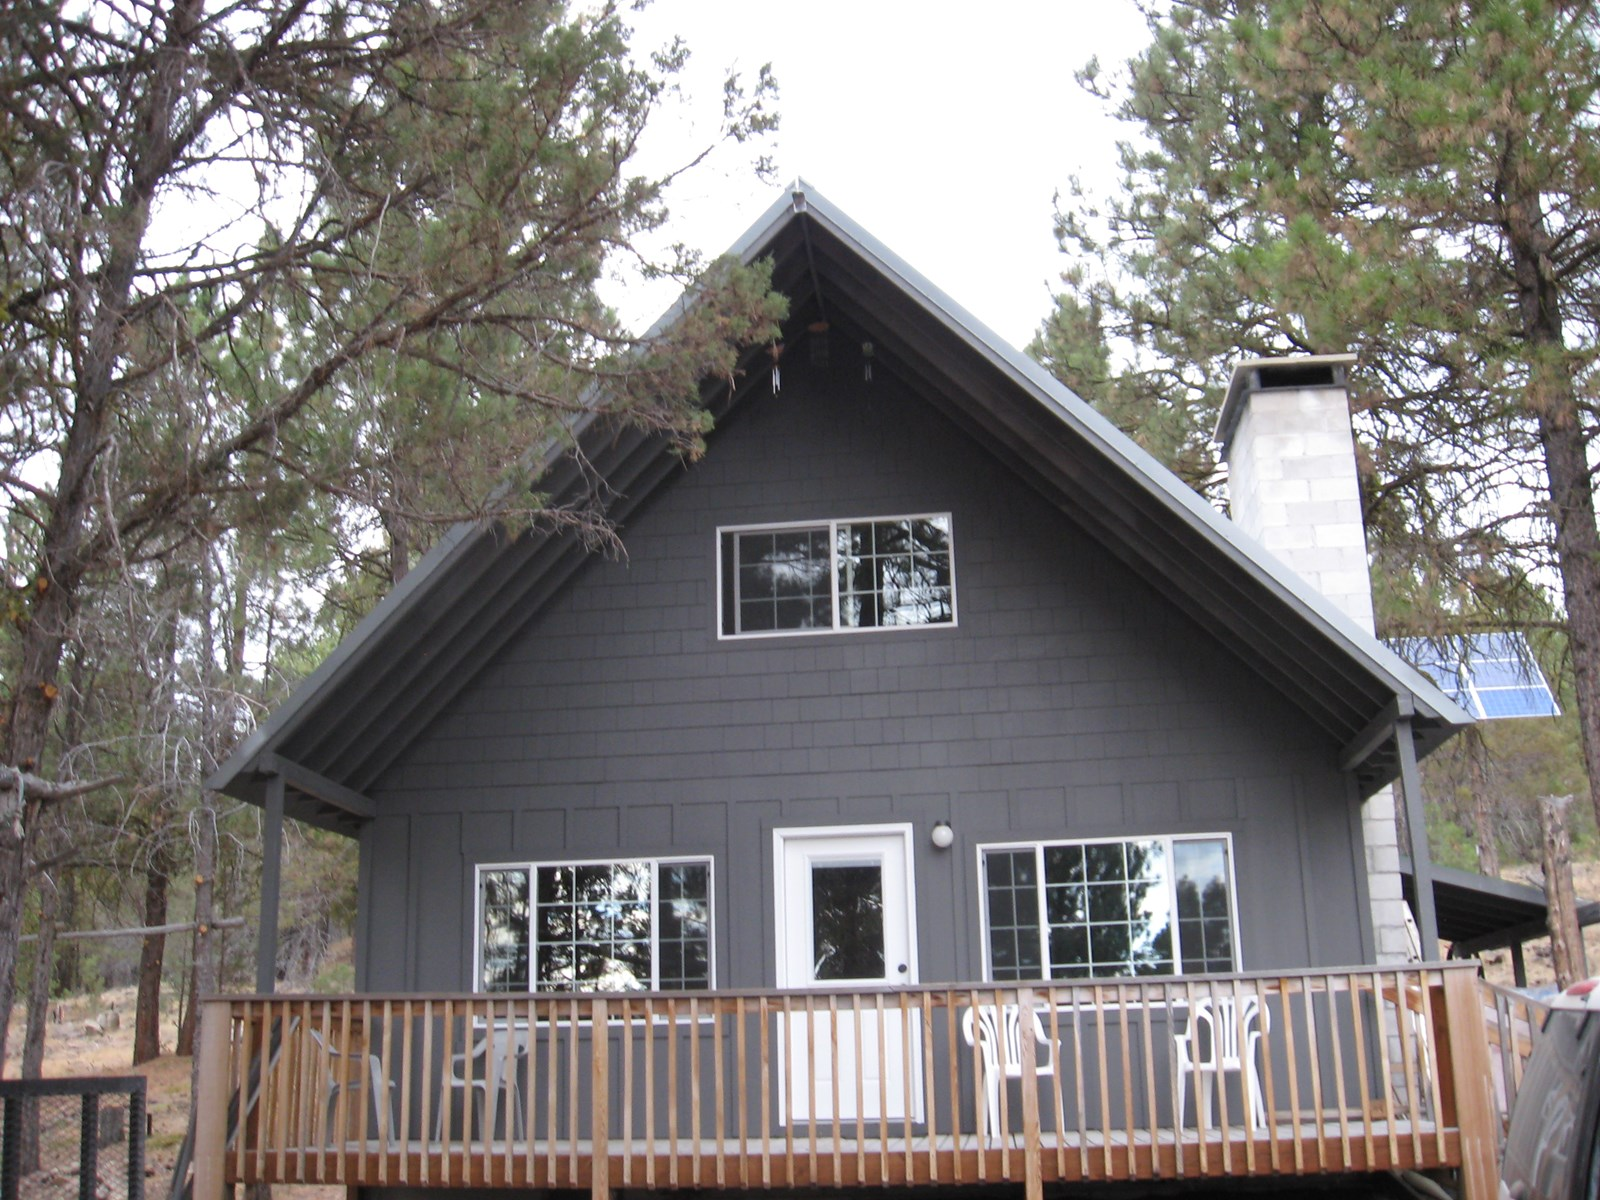 YELLOWJACKET CABIN FOR SALE IN MALHEUR FOREST